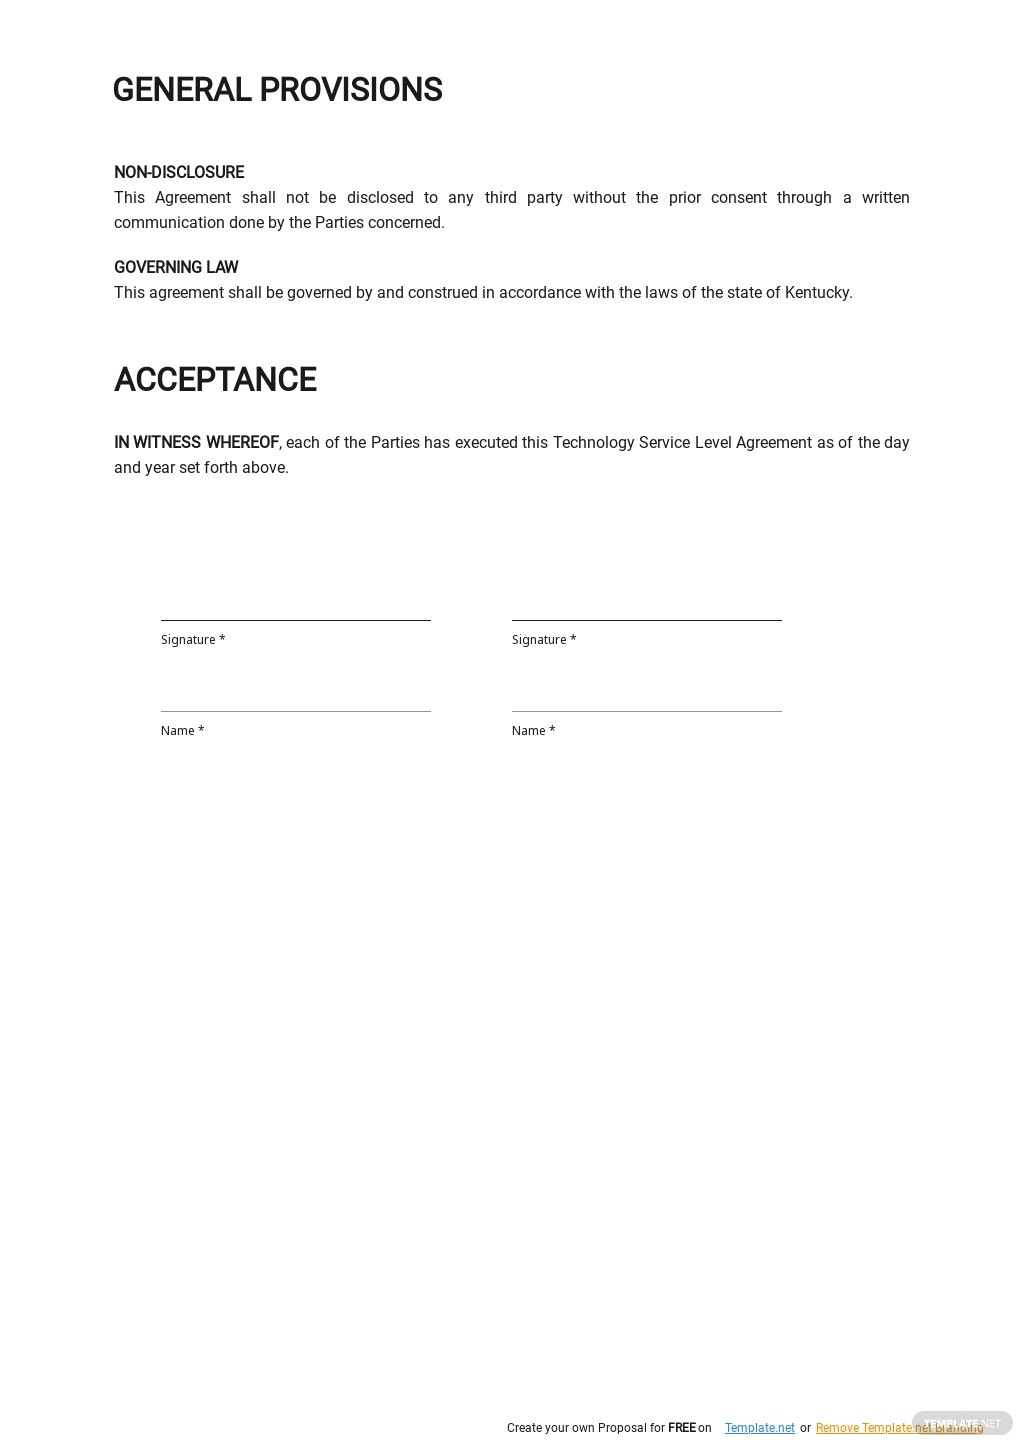 Free Technology Service Level Agreement Template 2.jpe